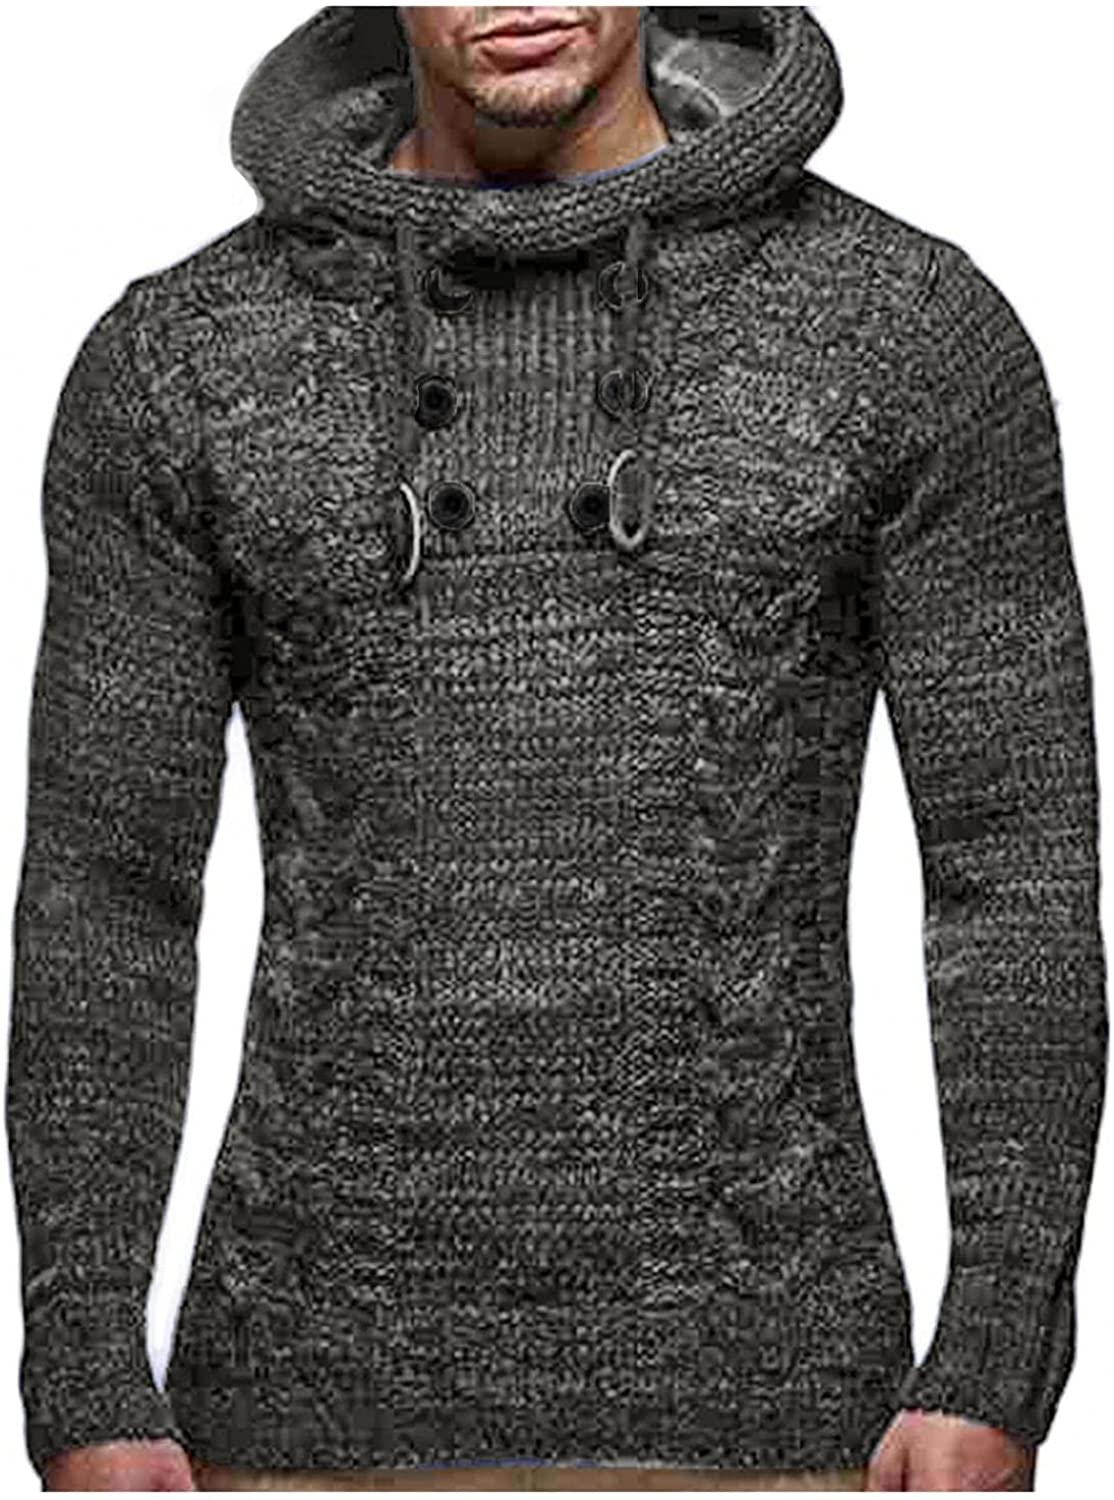 Men's Hoodie Solid Color Athletic Sweatshirt Long Sleeve Turtleneck Pullover Tops Knitted Sweater Fall Winter Outwear